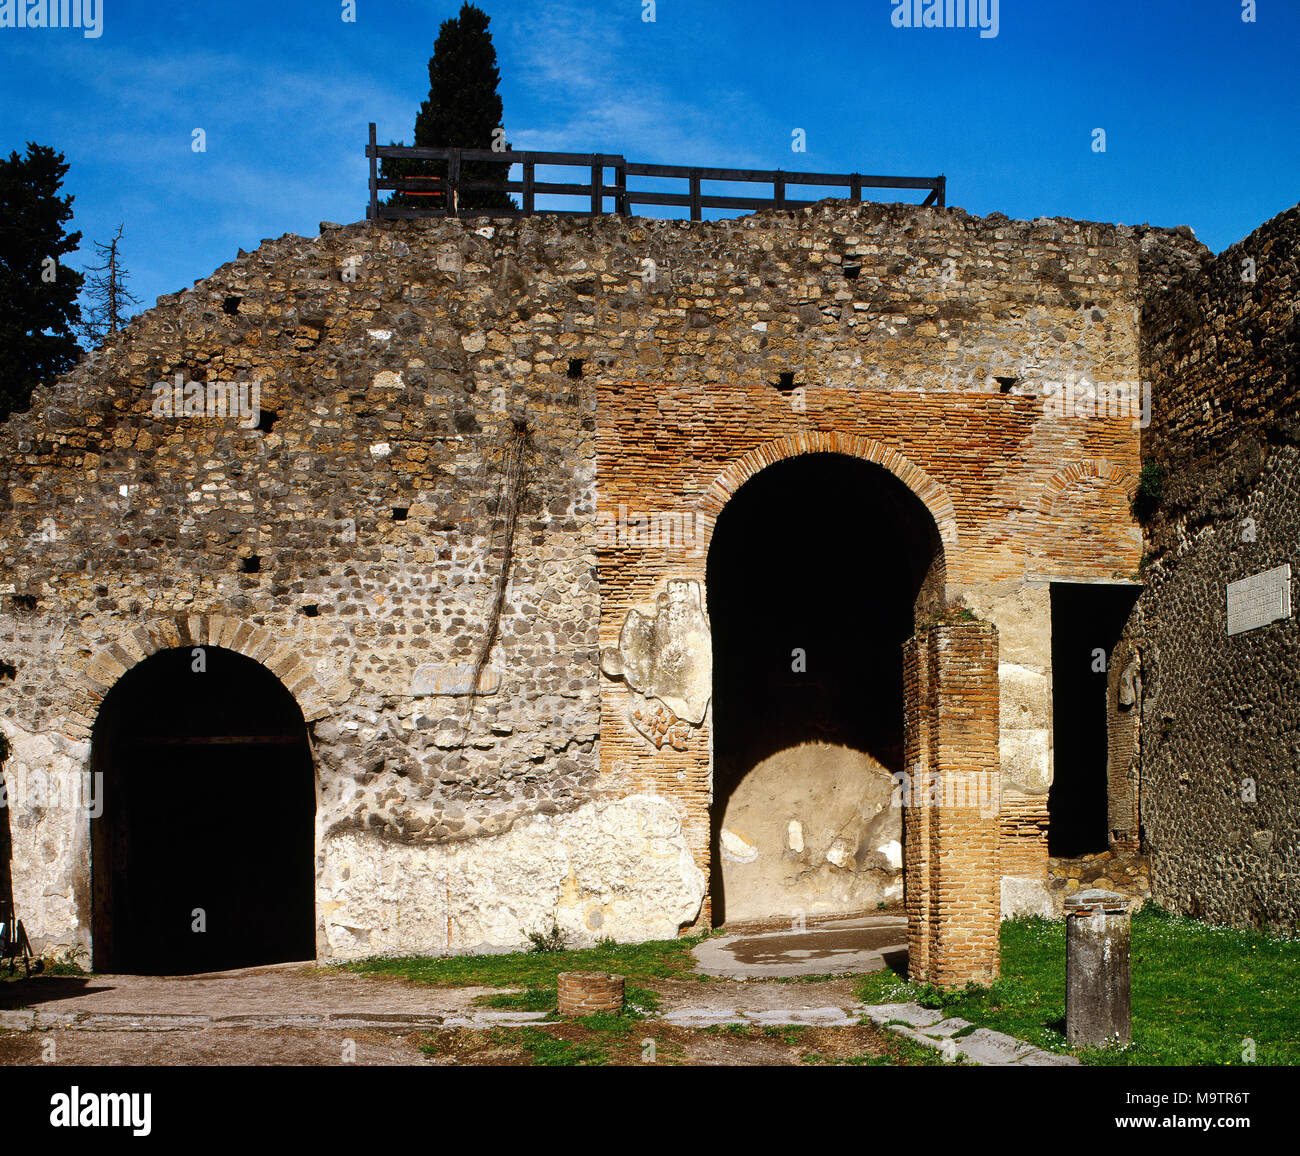 Pompeii. Ancient Roman city. Large Theatre, 2nd century BC. Entrance to the enclousure. Campania, Italy. - Stock Image